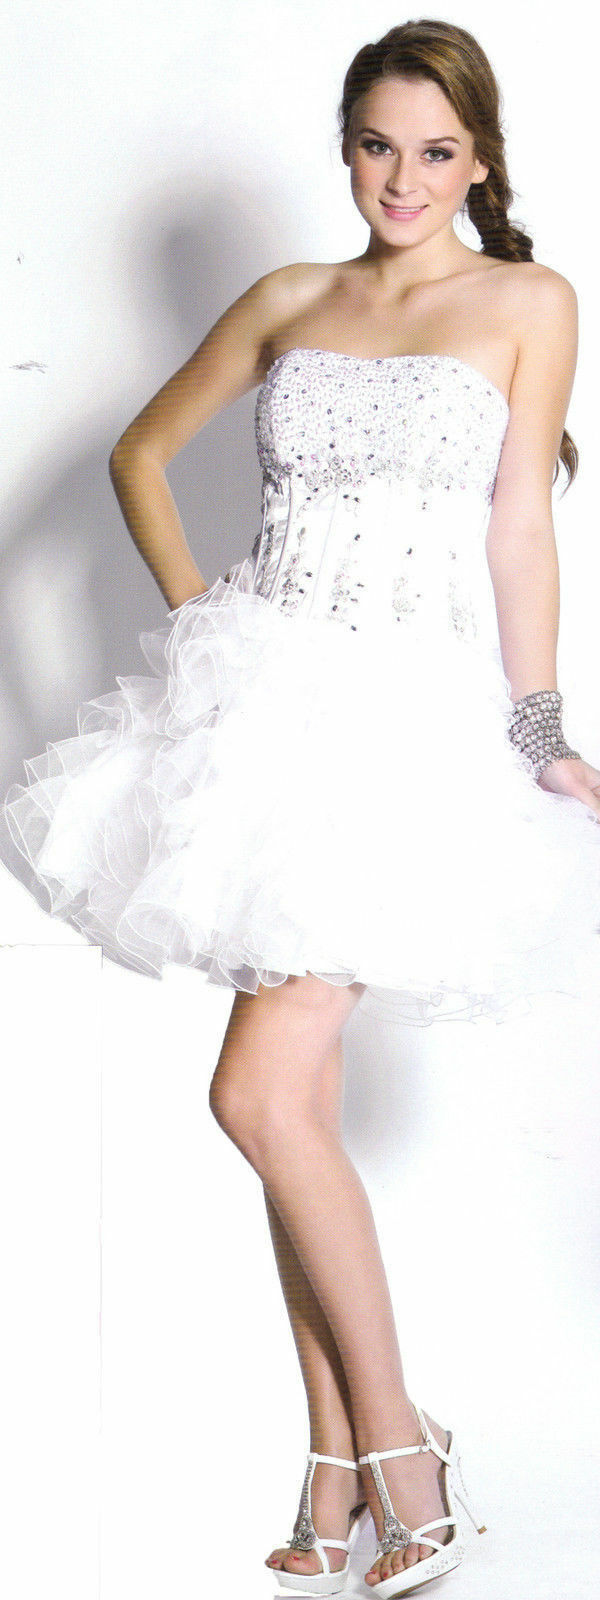 White Short Sweet 16 Dance Ball Gown Dress Party Prom Pageant Gala Evening SZ 16